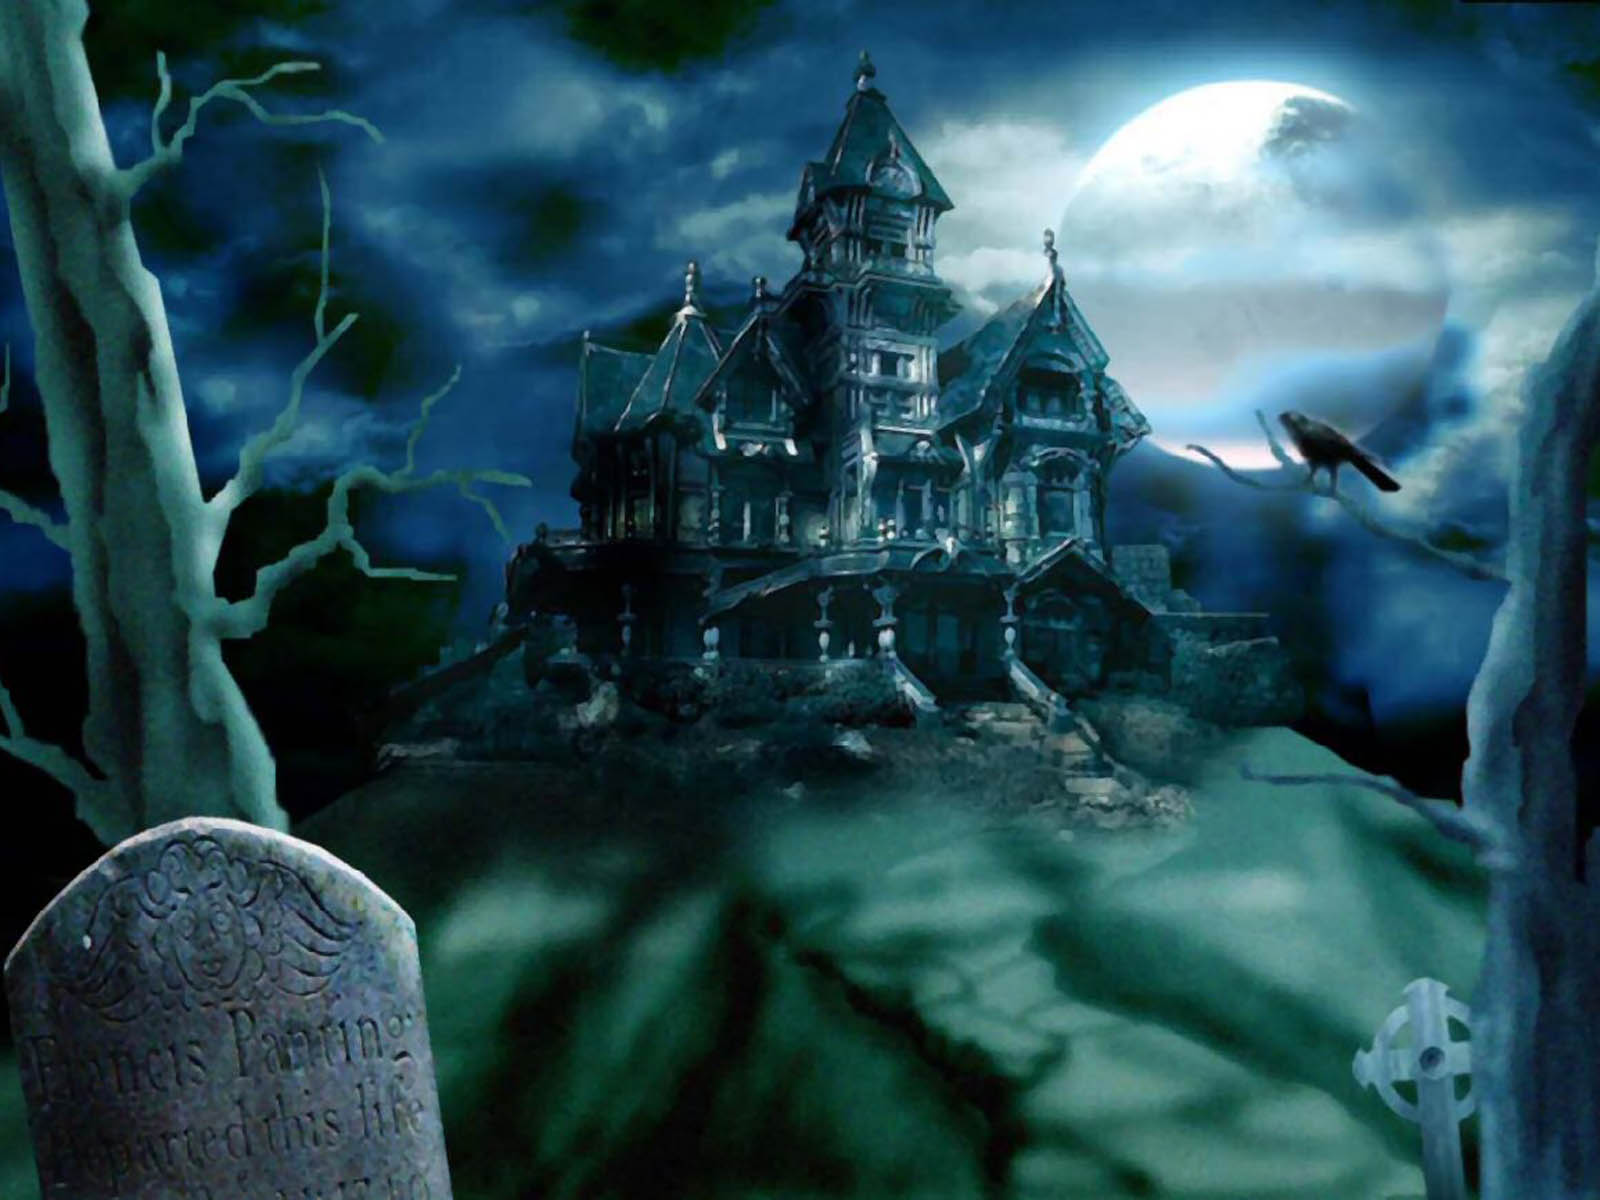 Horror Animated Wallpaper Free Download For Pc